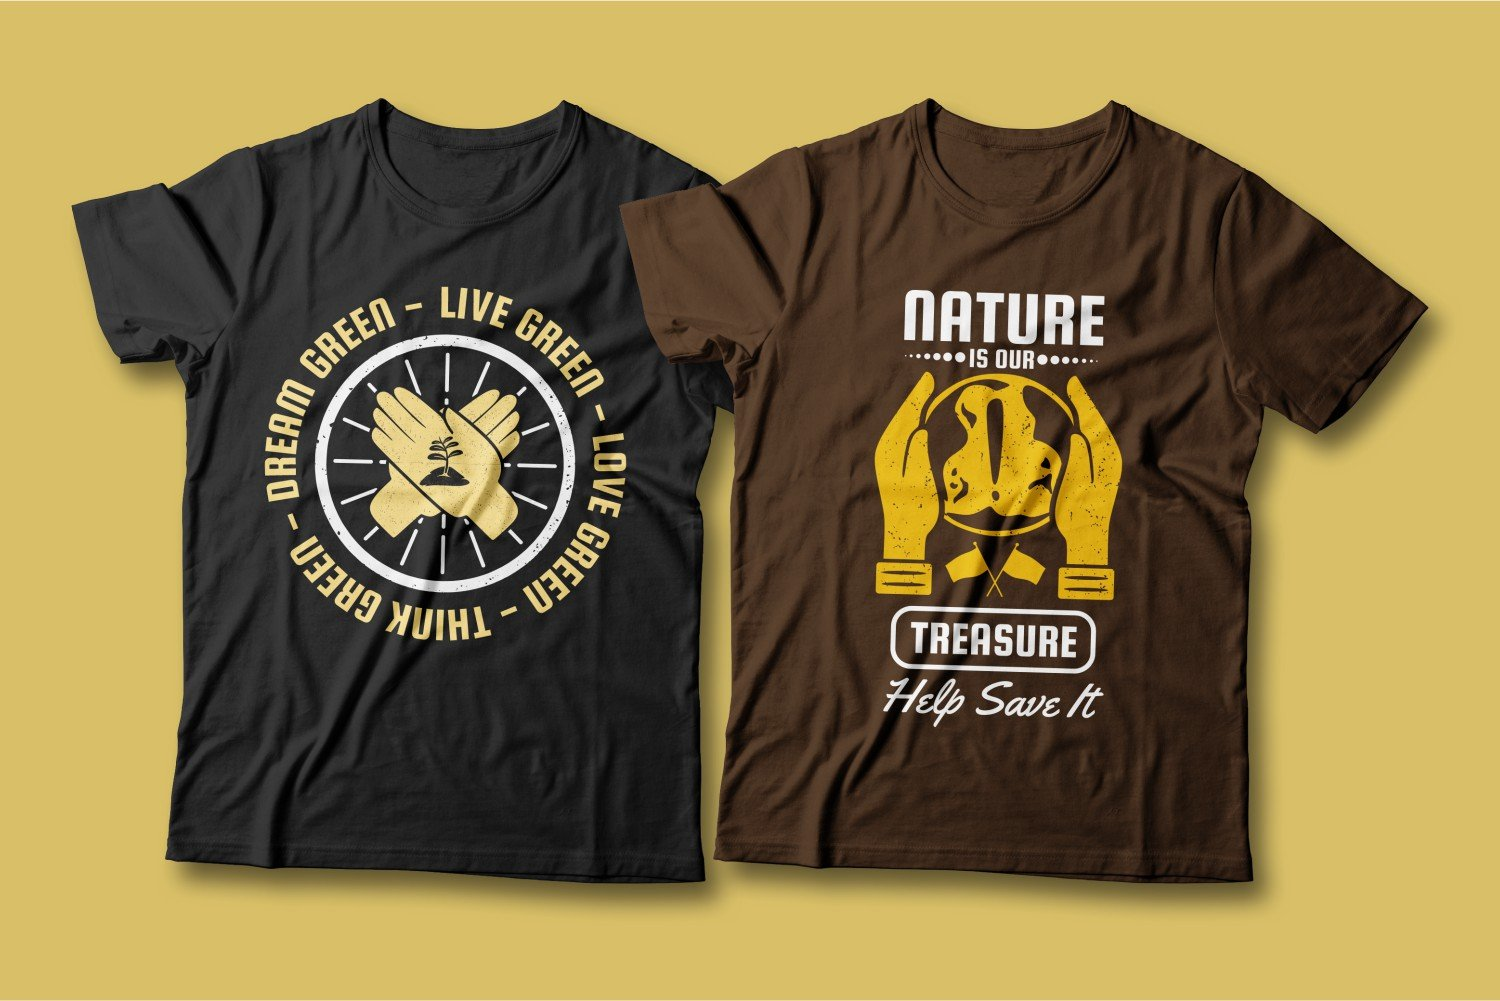 Two T-shirts - one black, the other brown; both show palms.